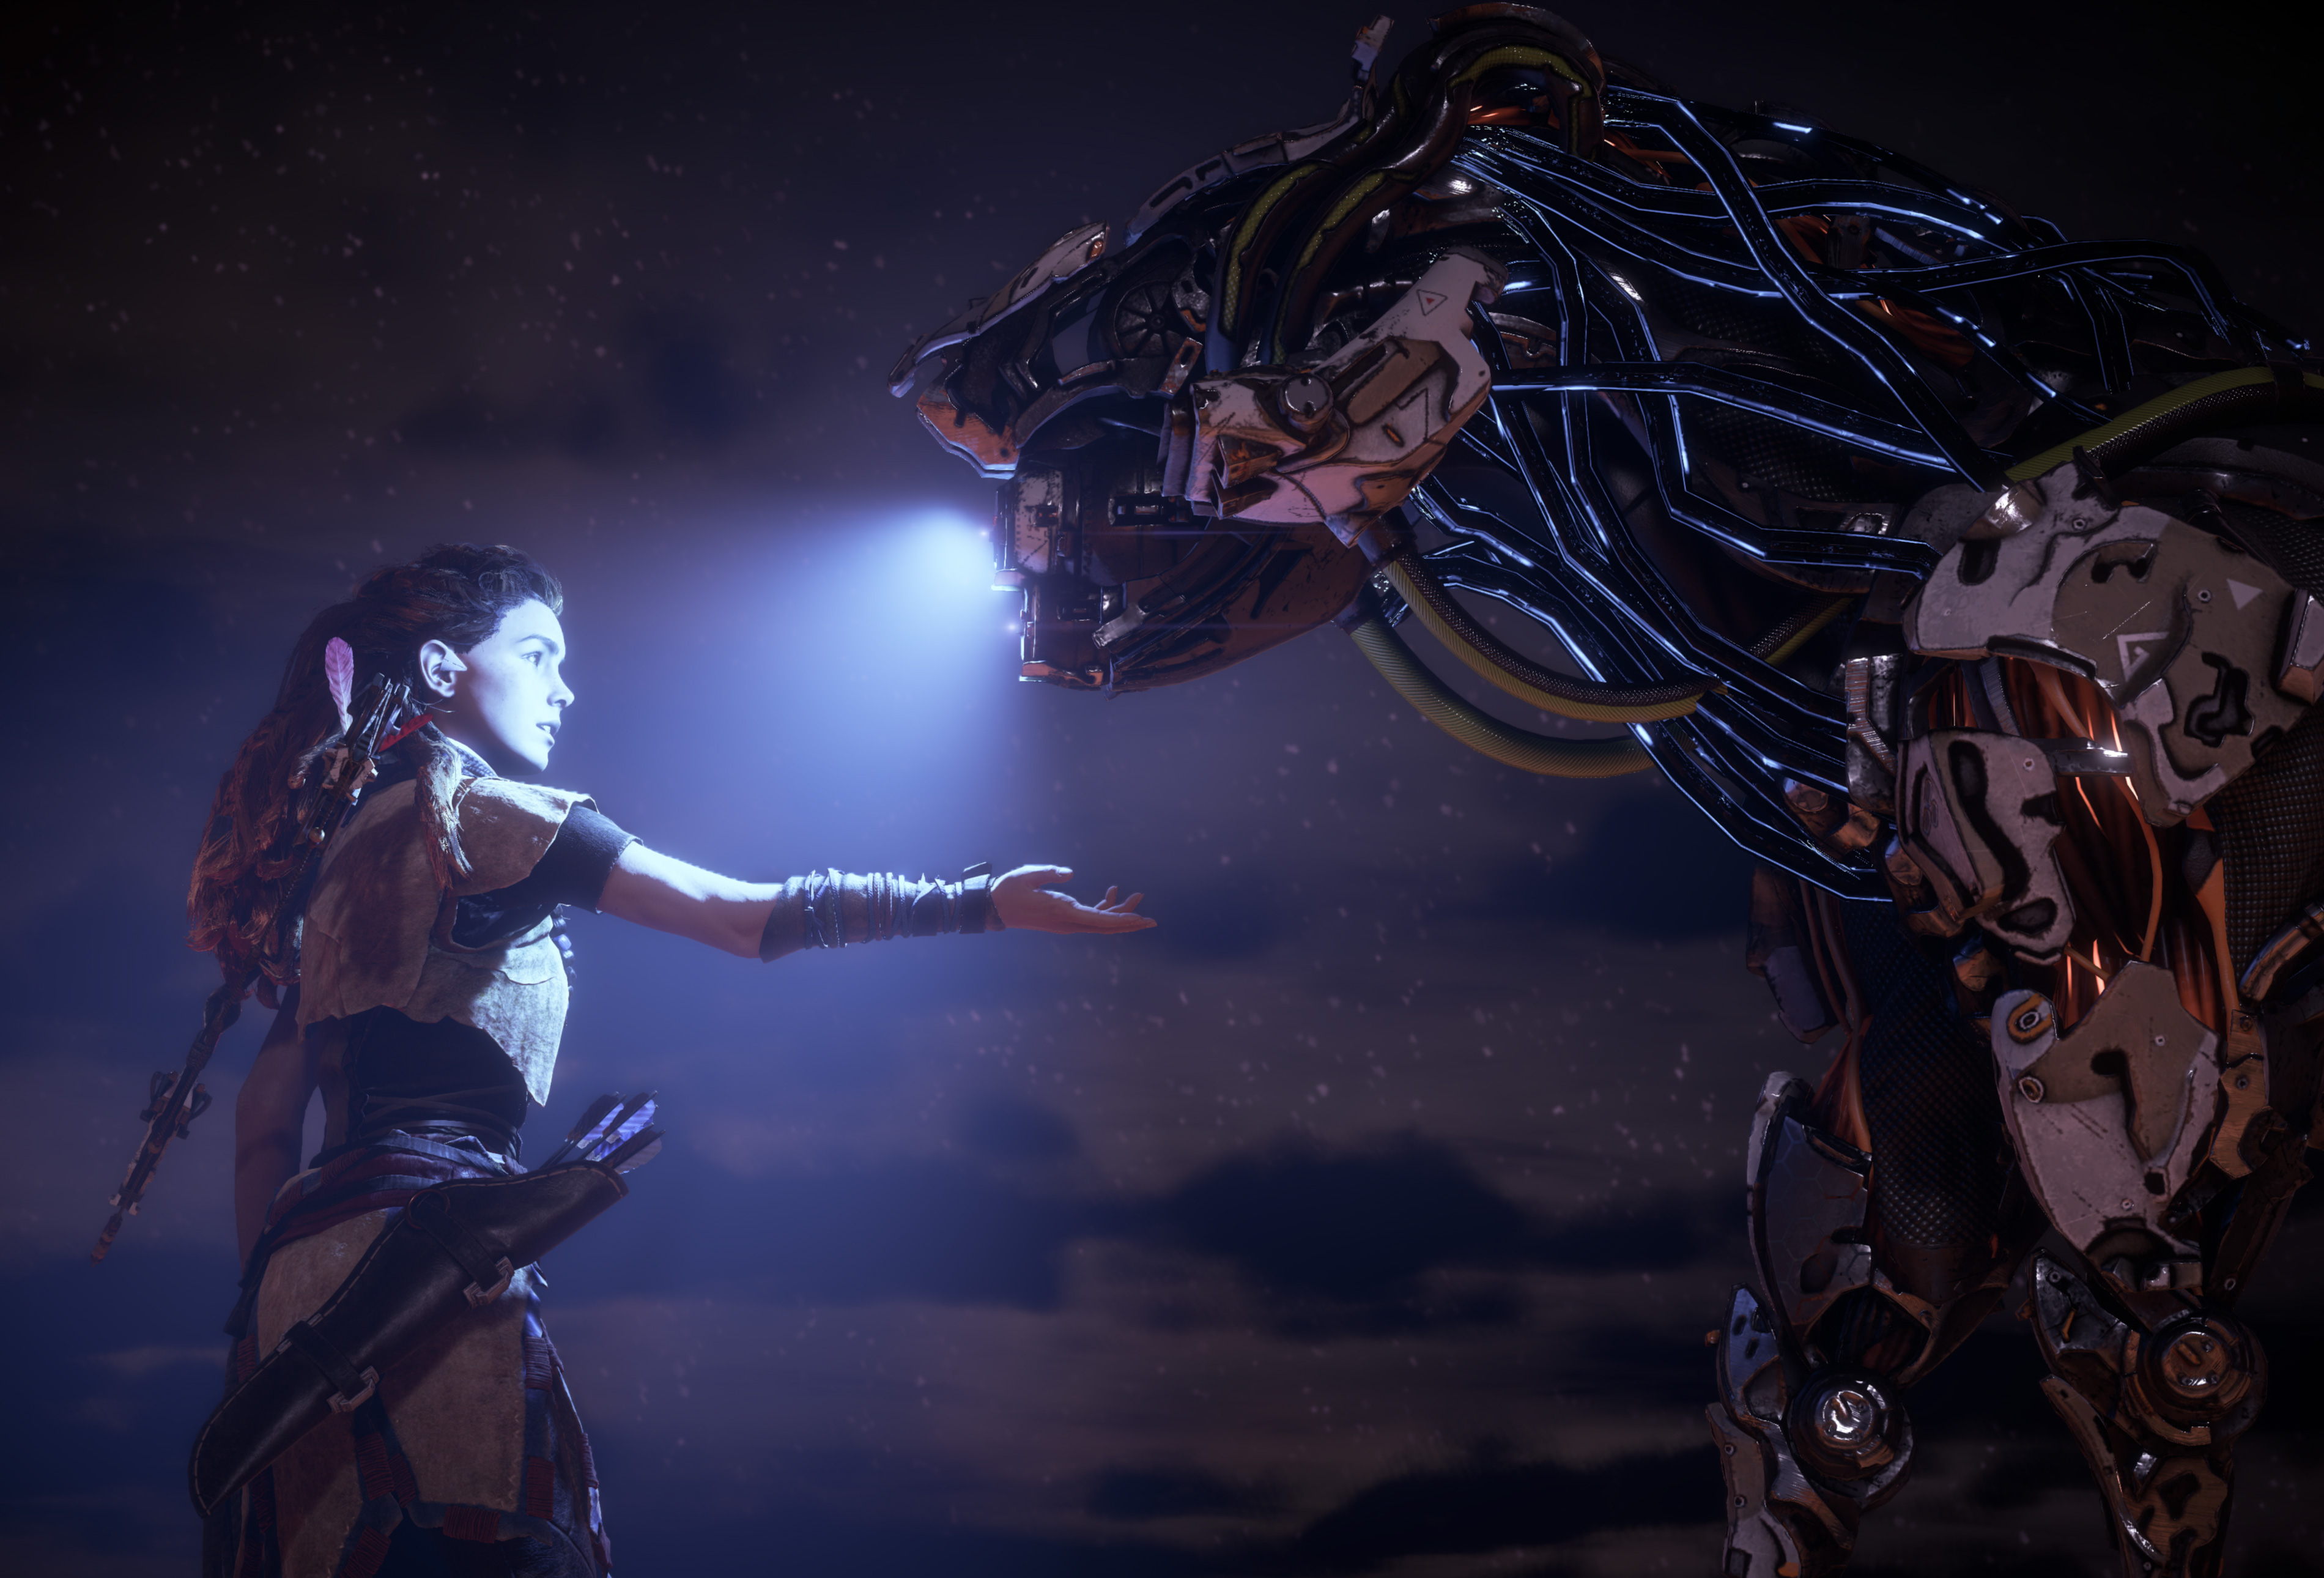 4k Horizon Zero Dawn Hd, HD Games, 4k Wallpapers, Images ...